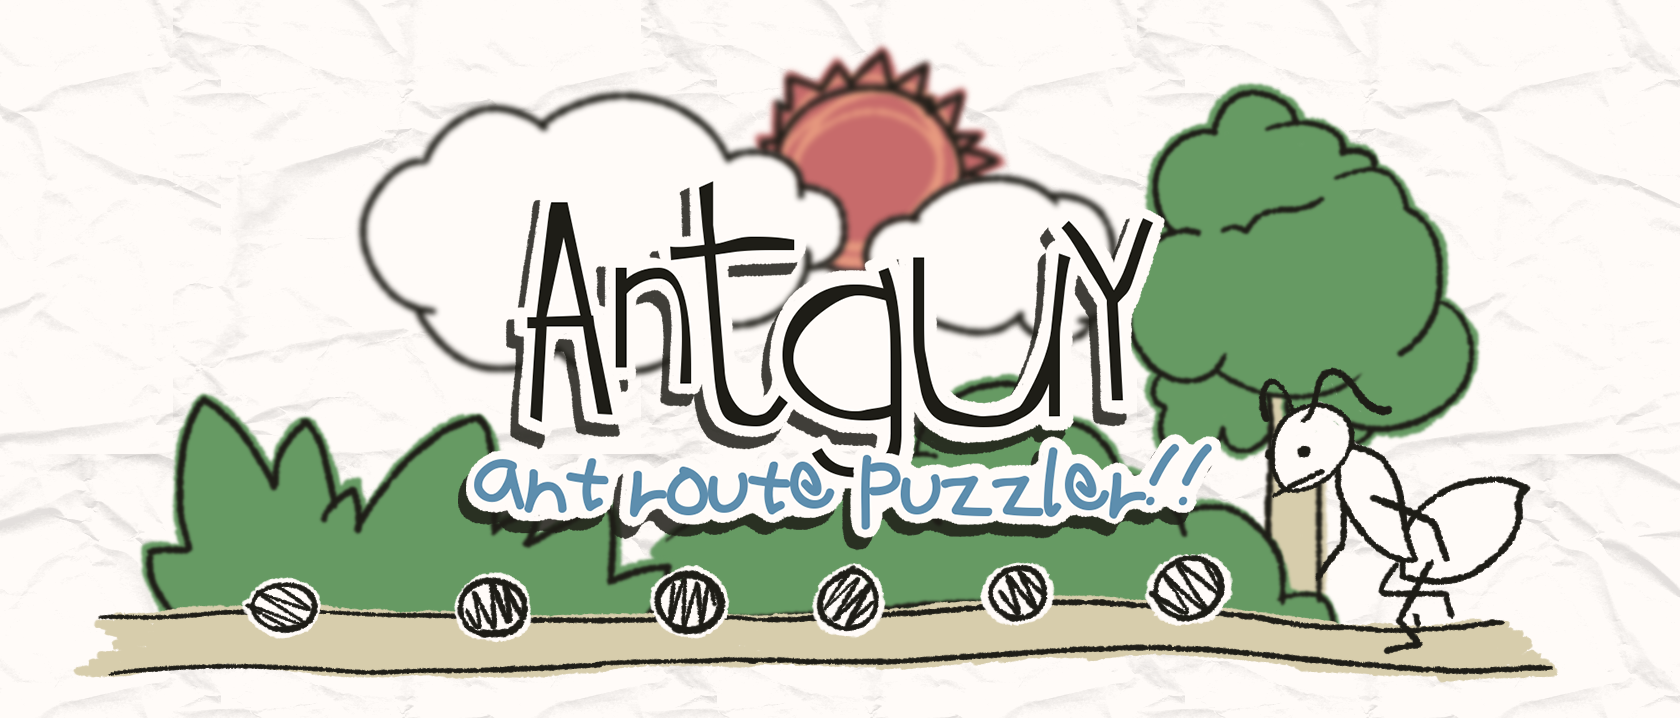 Antguy -ant route puzzler!!-